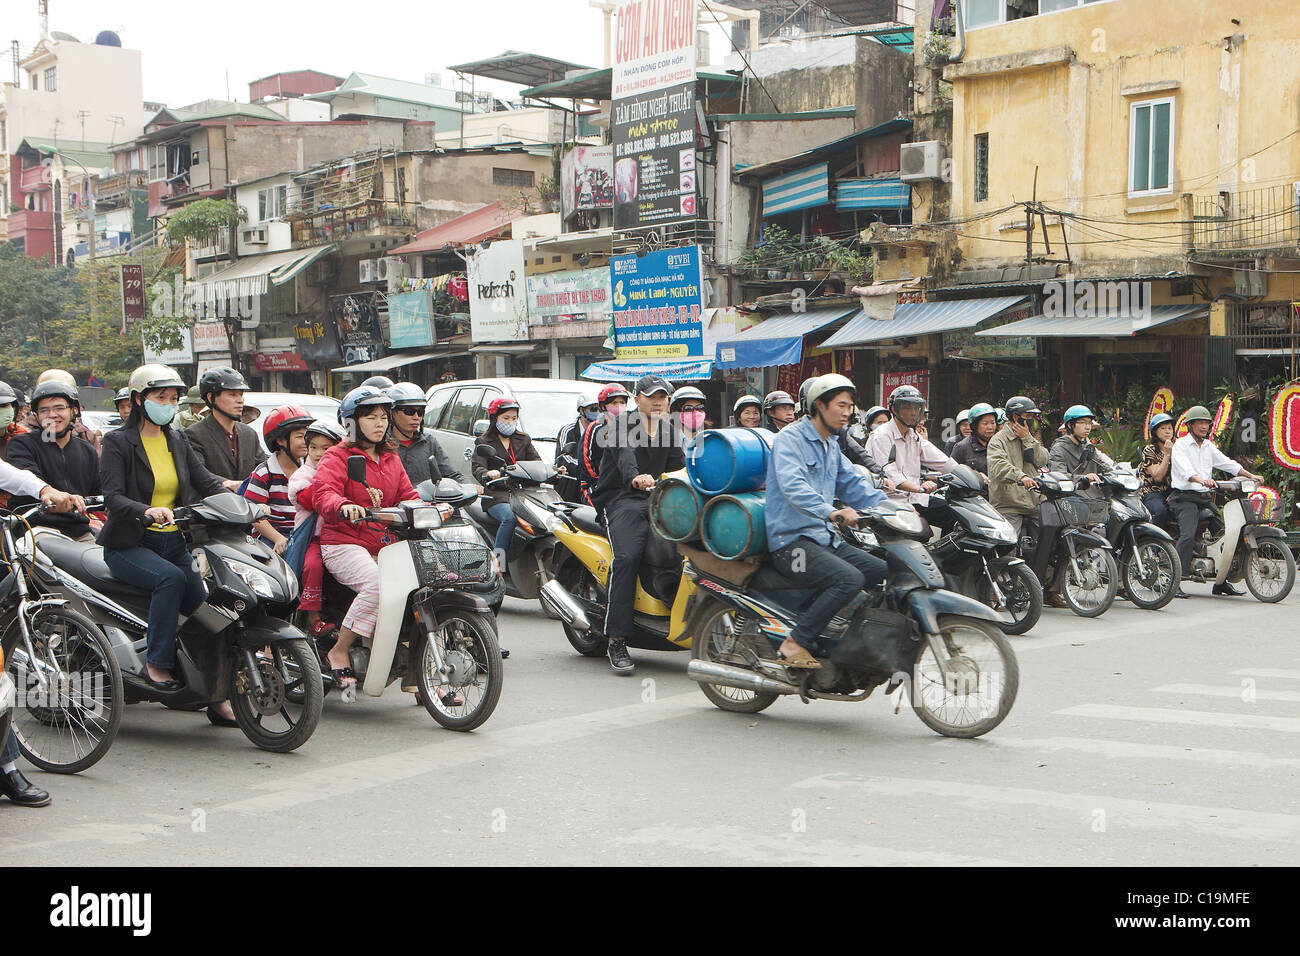 Two-wheeled transport clogs the streets of Hanoi, Vietnam - Stock Image